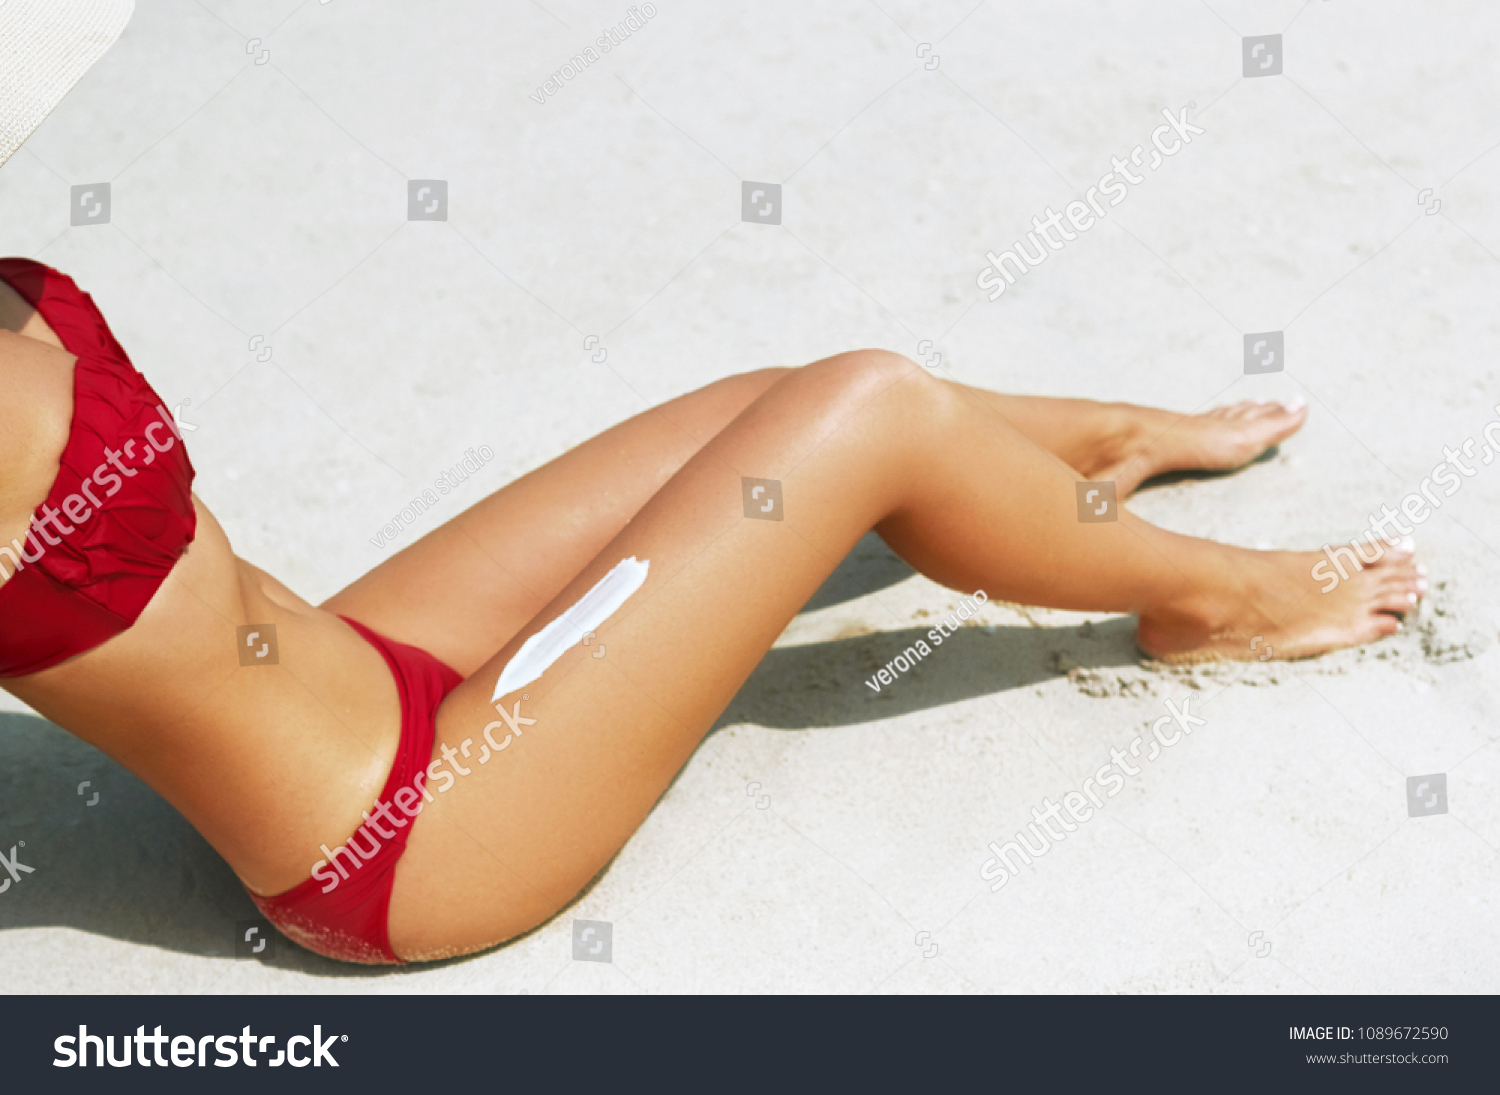 Sunscreen sun drawing lotion on suntan legs relaxing tanning on tropical beach holiday. Women lower body lying with sunblock cream  #1089672590